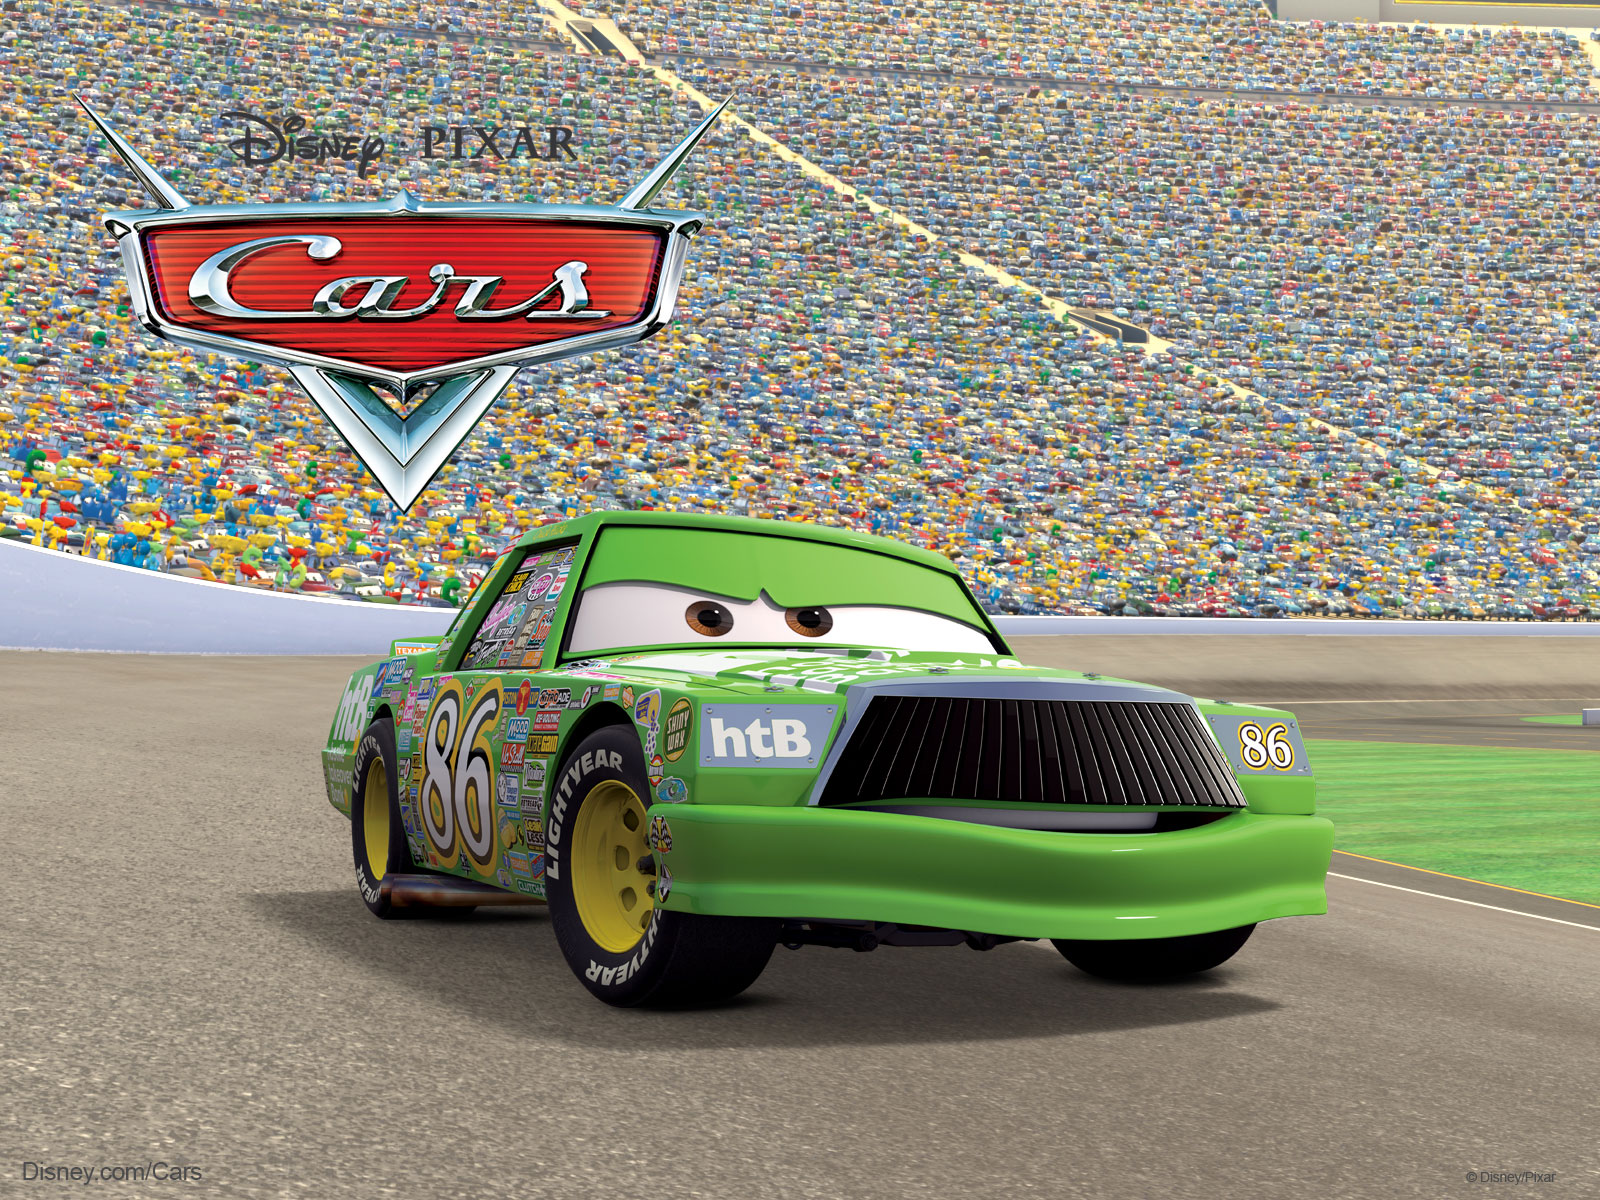 Hicks The Race Car From Pixar S Cars Movie Wallpaper